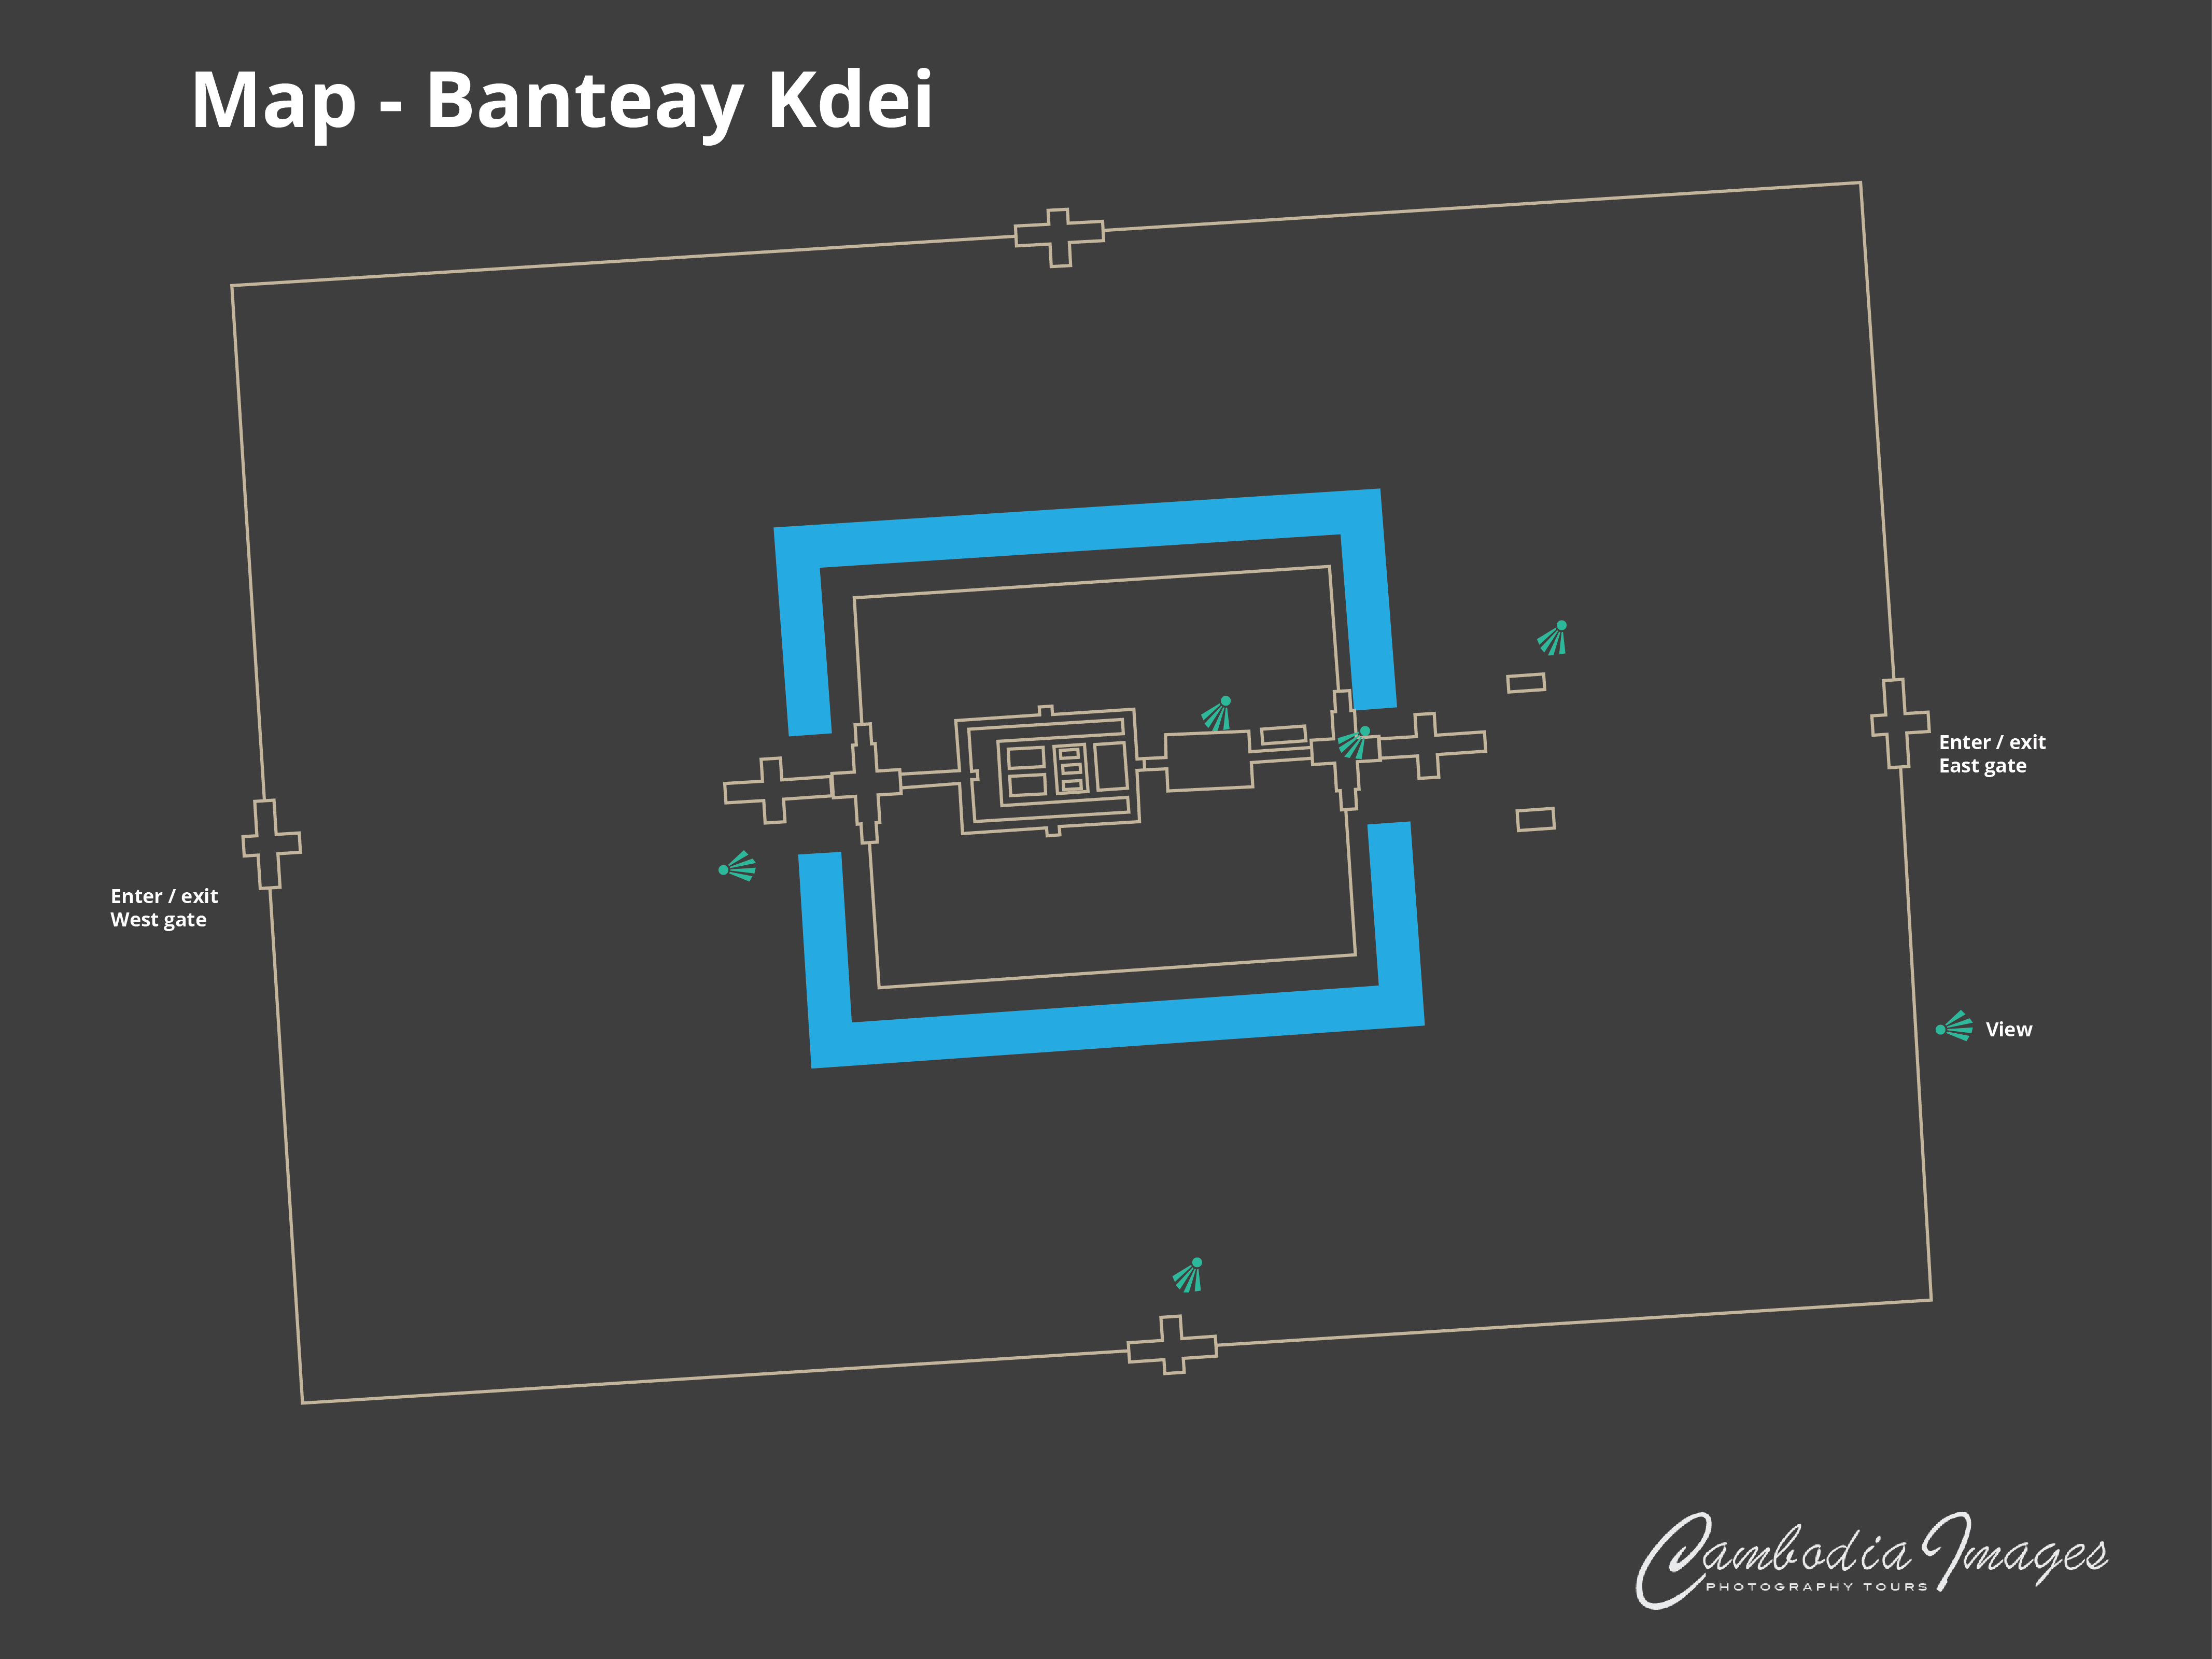 Banteay Kdei map 2